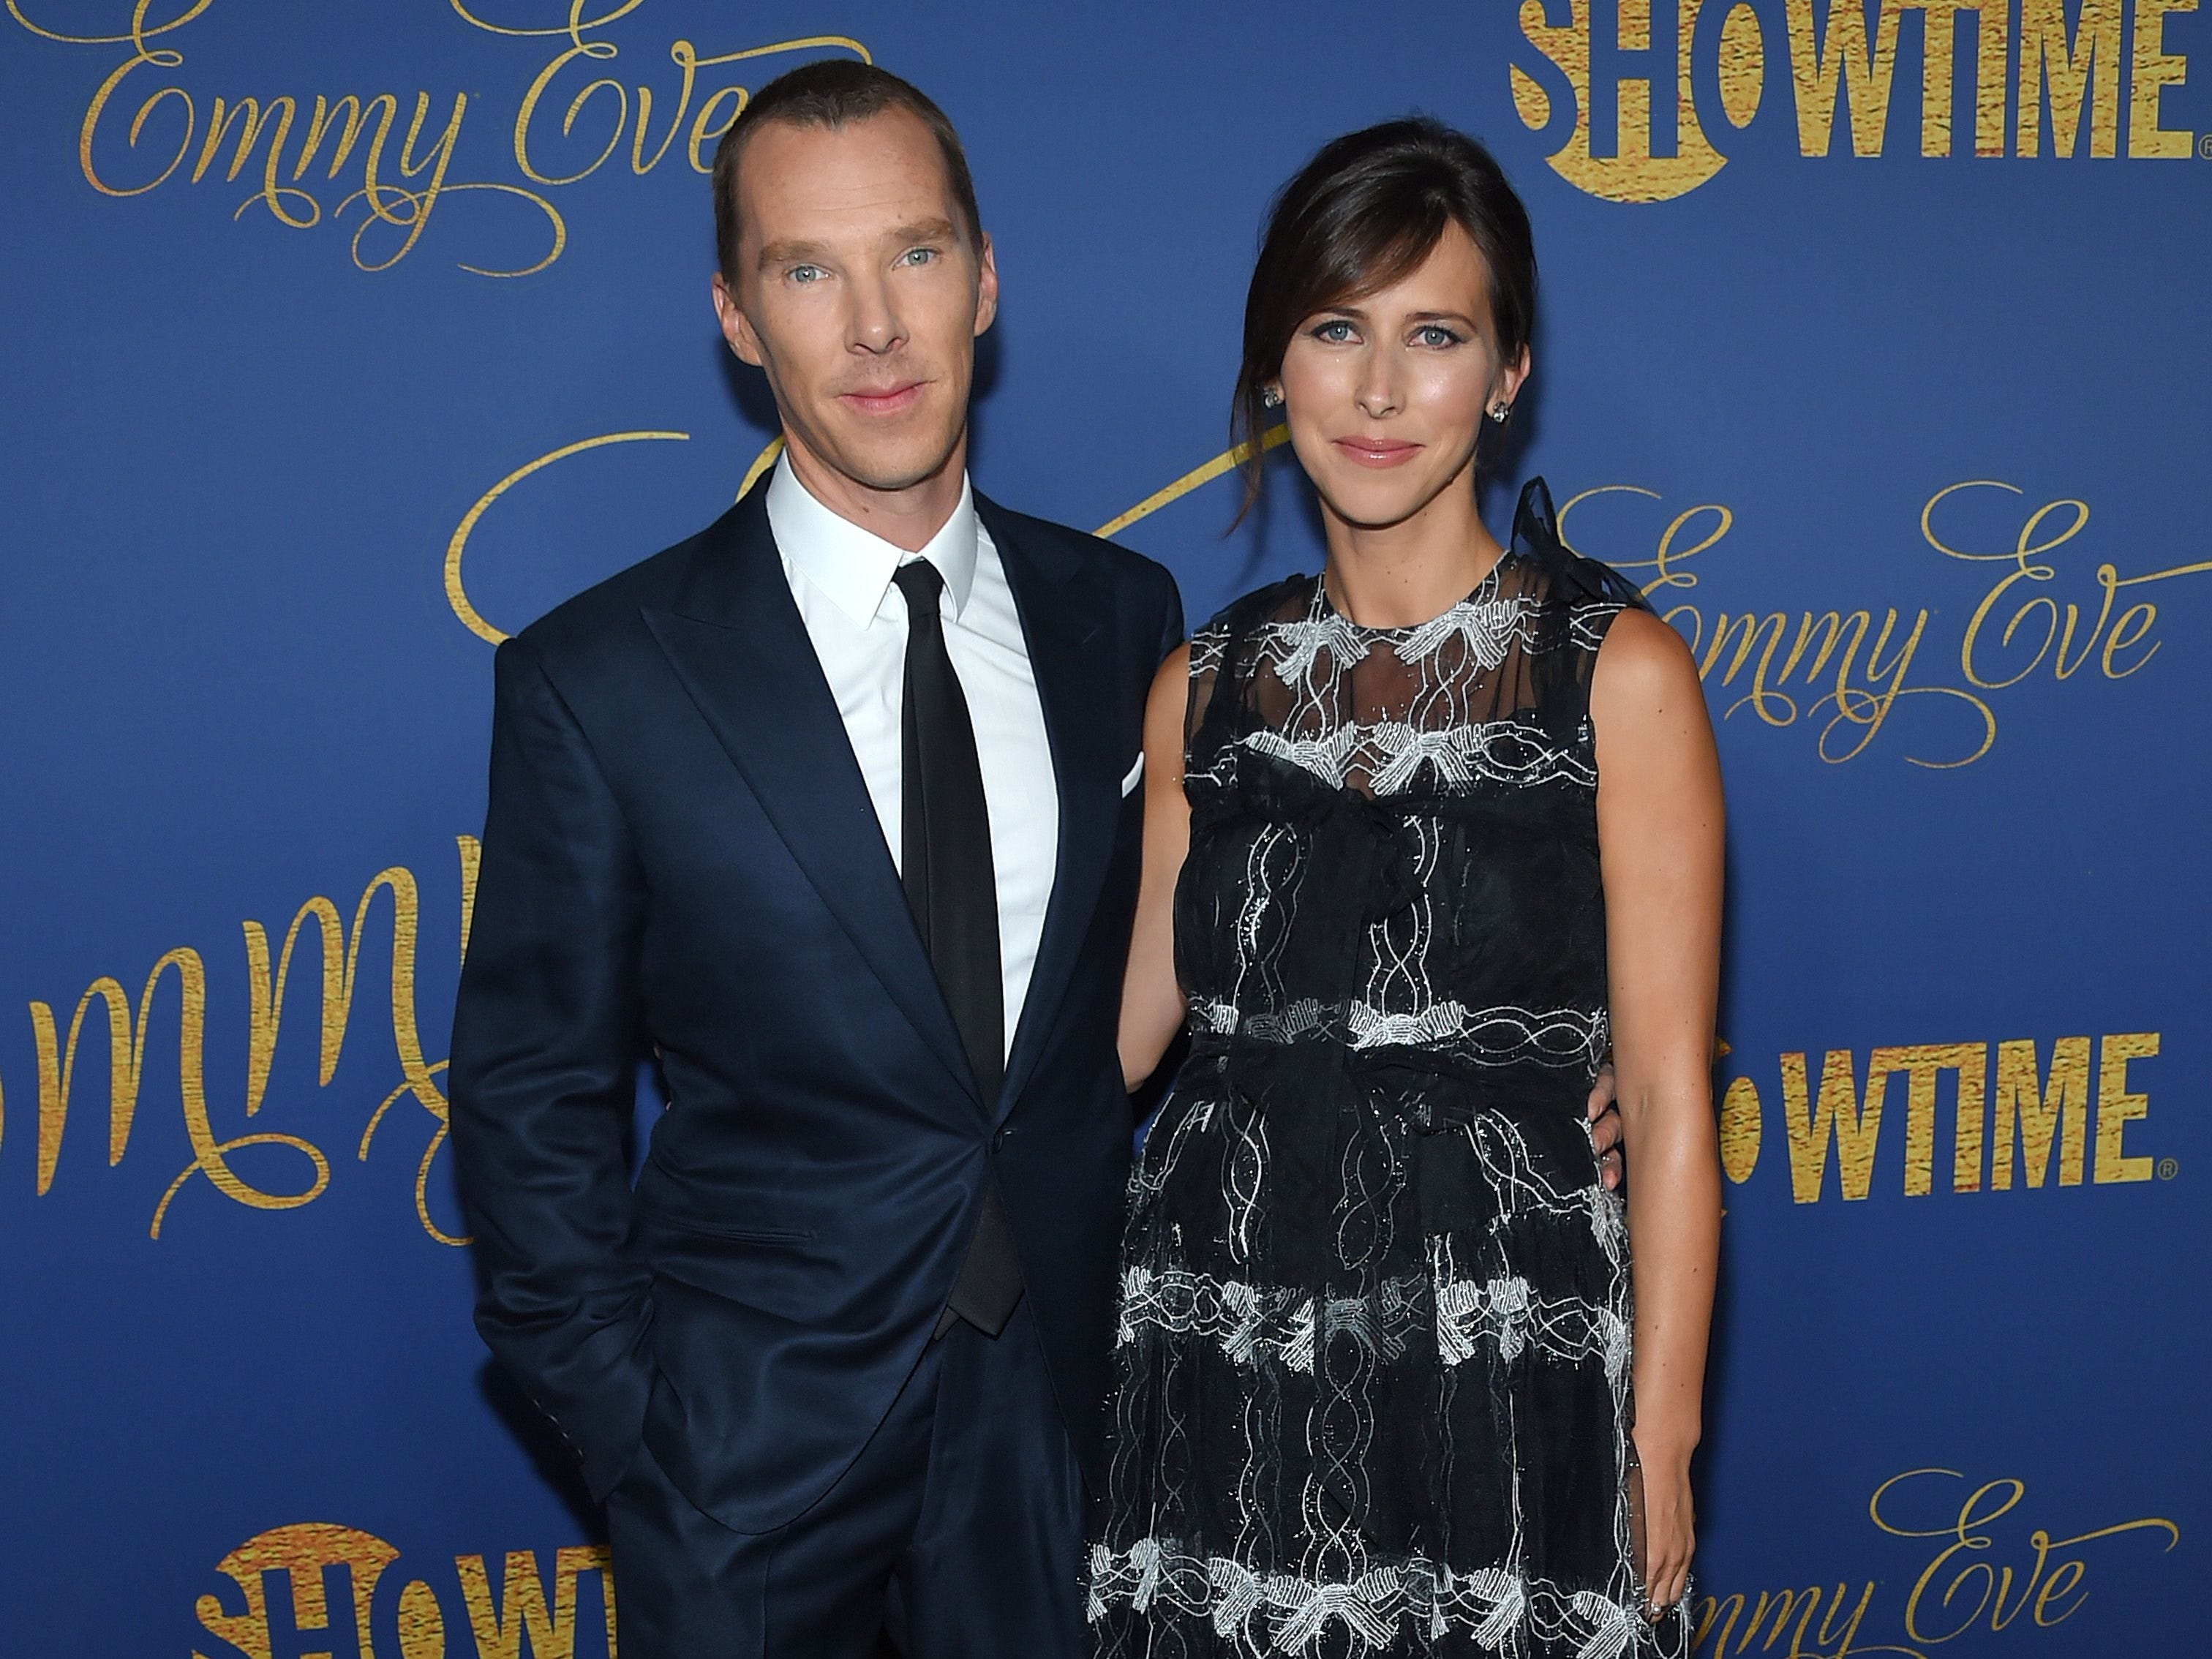 English actor Benedict Cumberbatch and his wife English theatre director Sophie Hunter attend the Showtime Emmy Eve Nominees Celebration in Los Angeles on September 16, 2018. (Photo by LISA O'CONNOR / AFP)LISA O'CONNOR/AFP/Getty Images ORIG FILE ID: AFP_1957T6